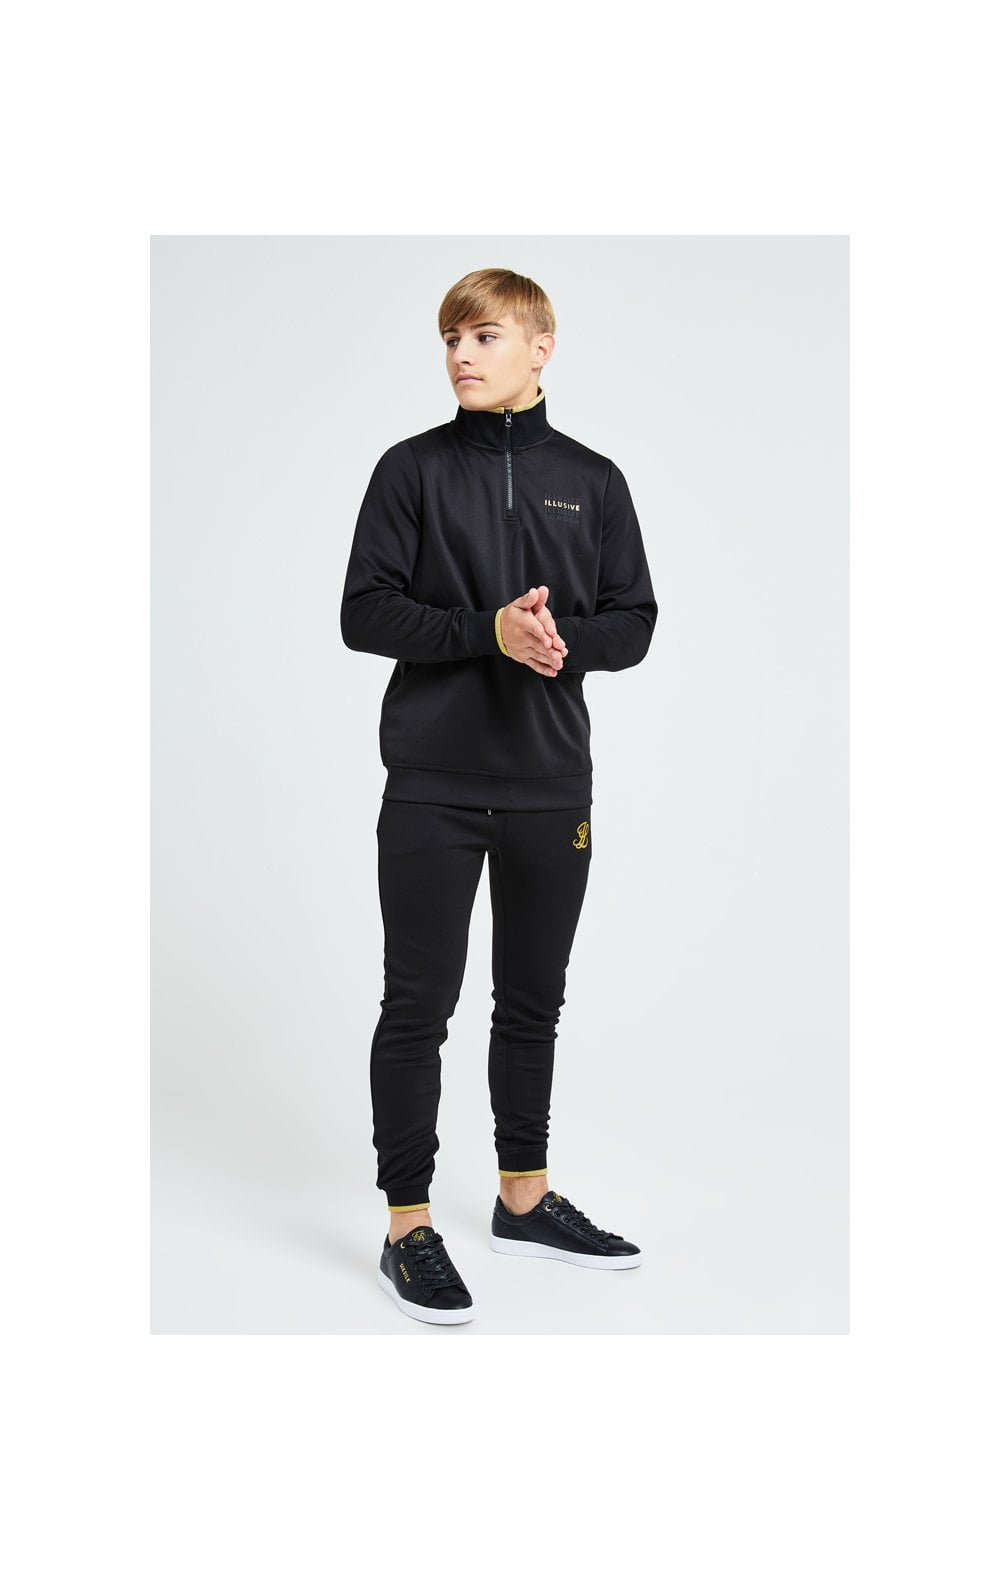 Illusive London Sovereign 1/4 Zip Hoodie  - Black & Gold (5)